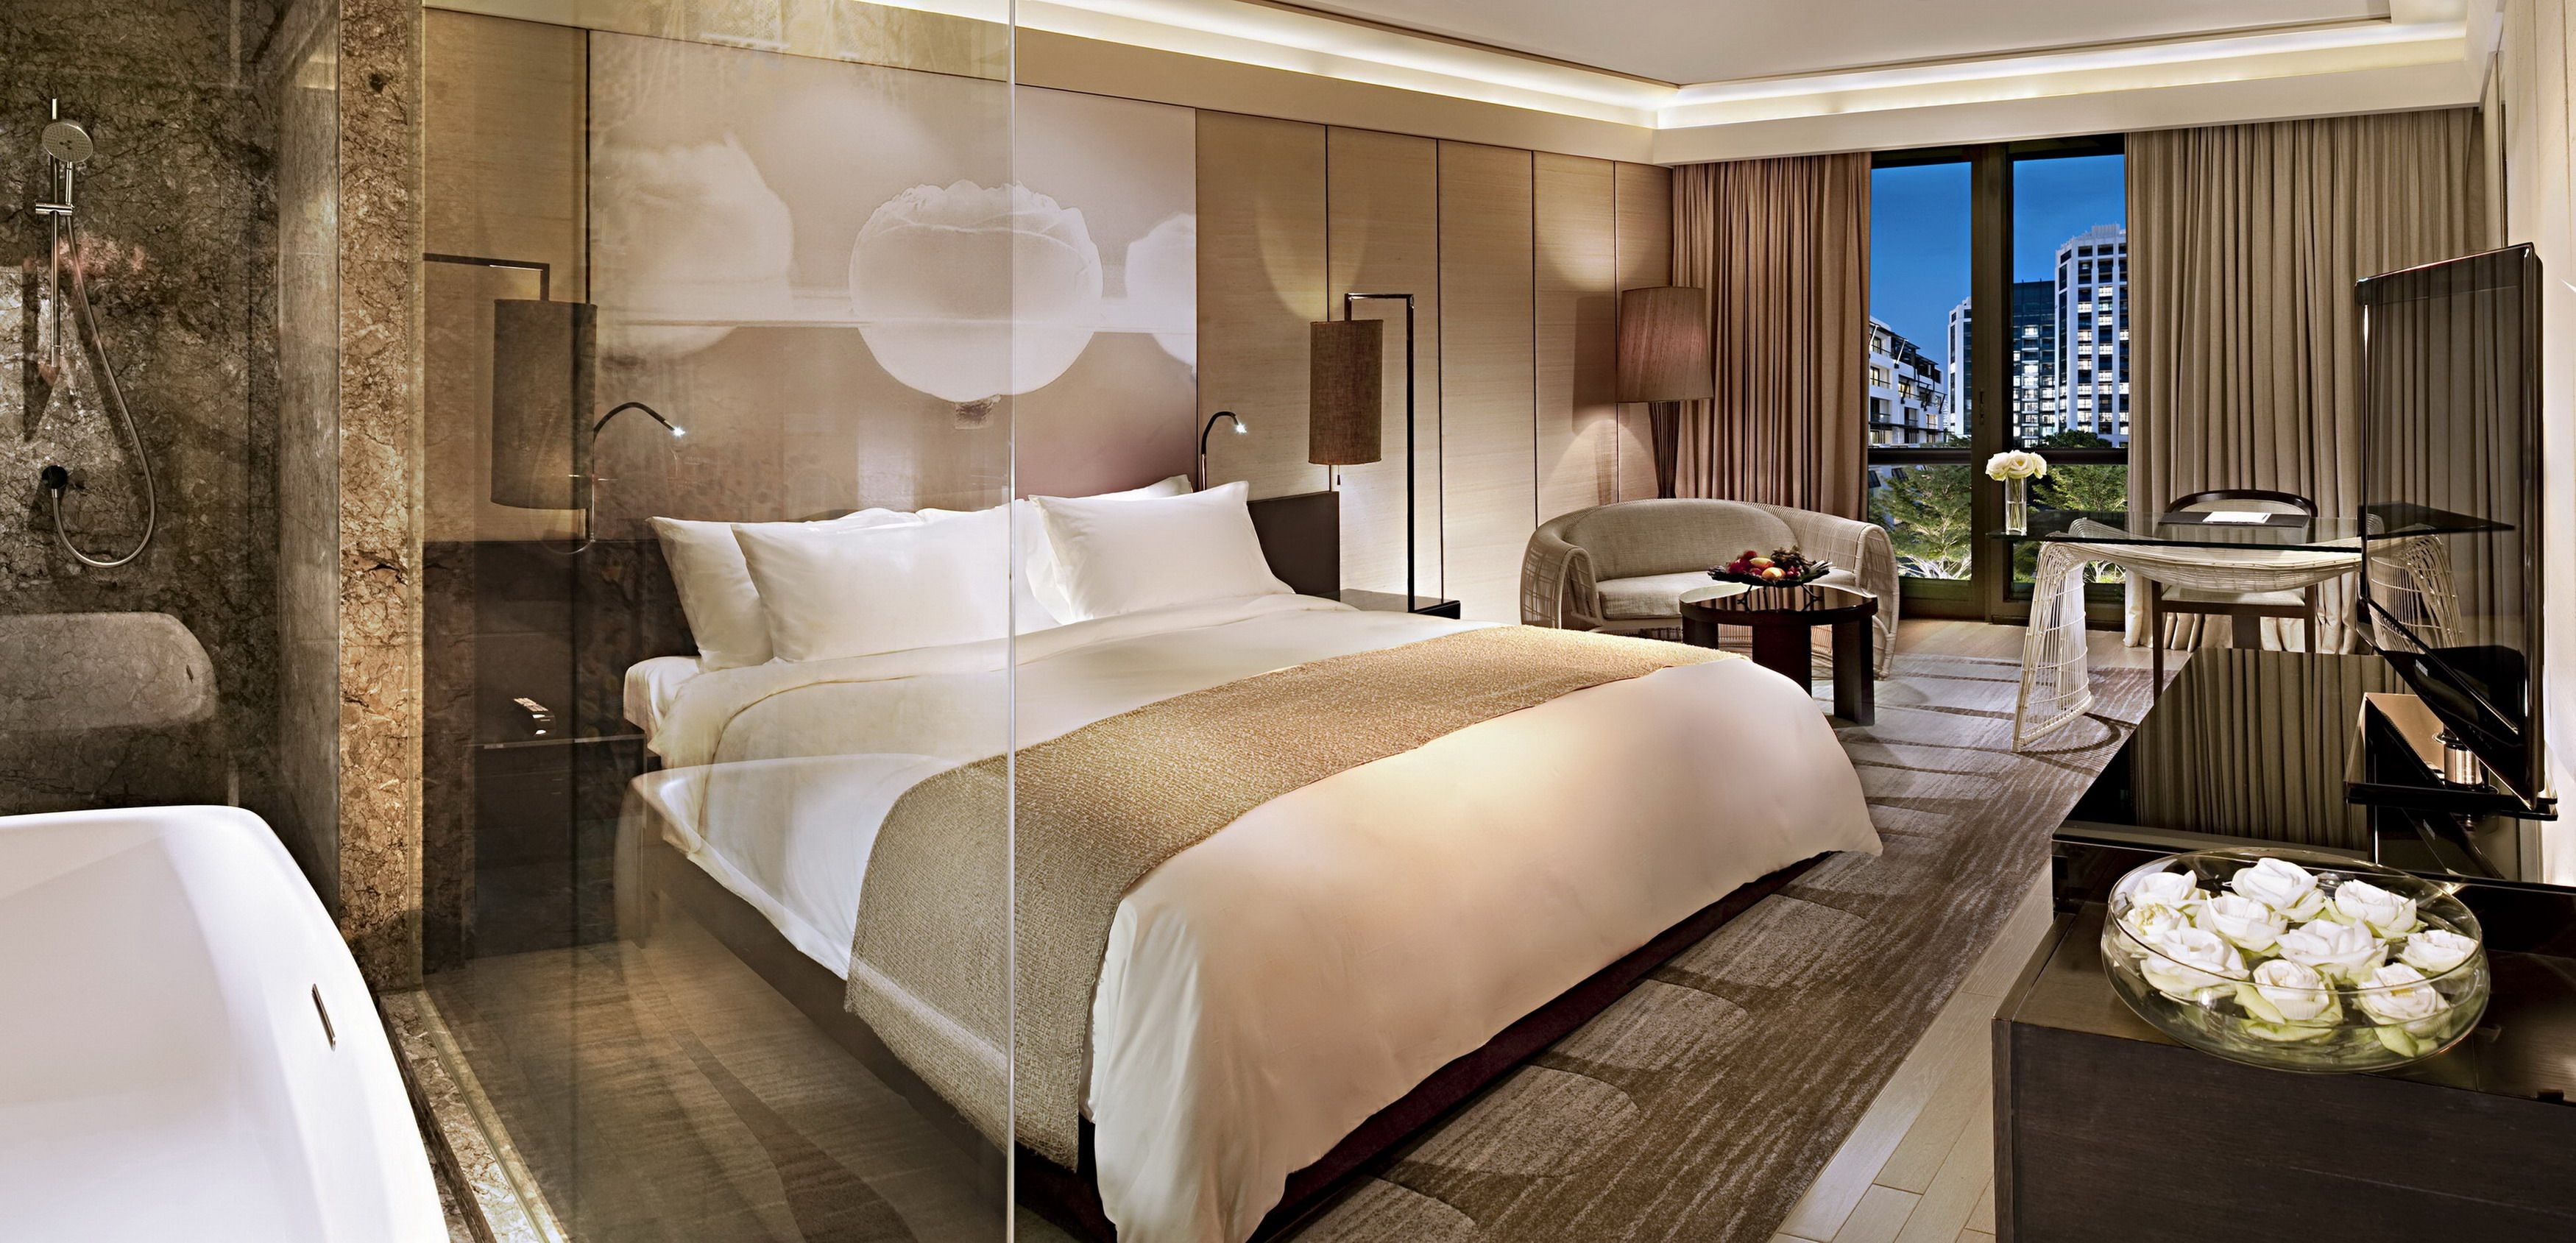 Luxury hotel rooms pictures new luxury kempinski hotel for Nice hotel design